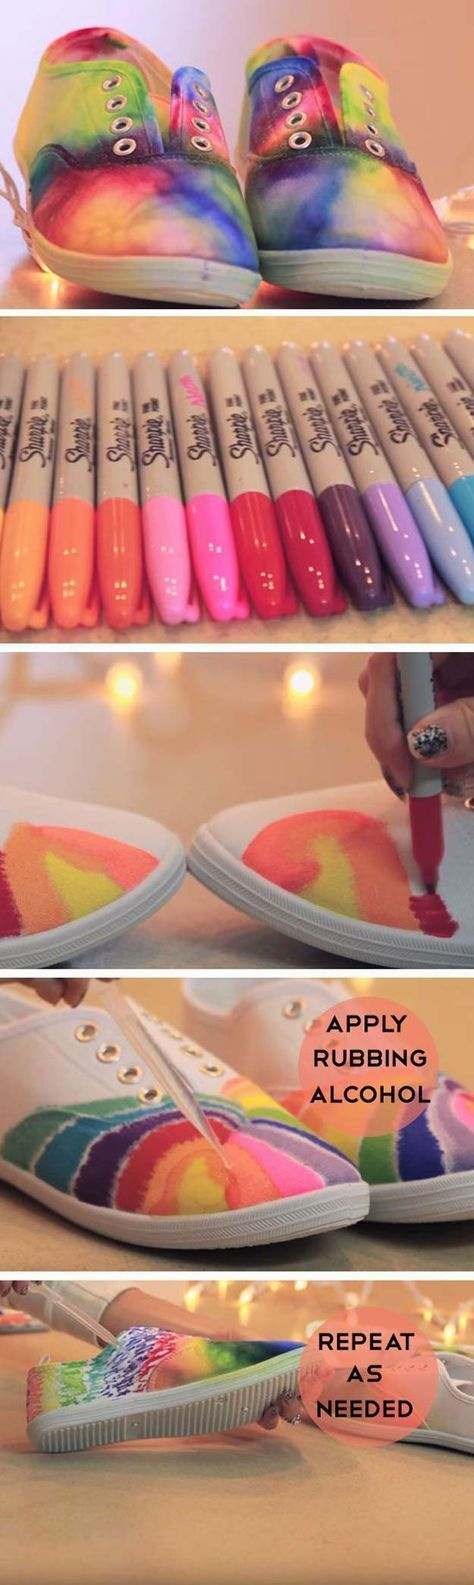 Love rainbows? So do we! Who is not to love crafts with rainbows, then? Bright and super colorful, these DIY rainbow crafts just make me smile. Cheery and creat